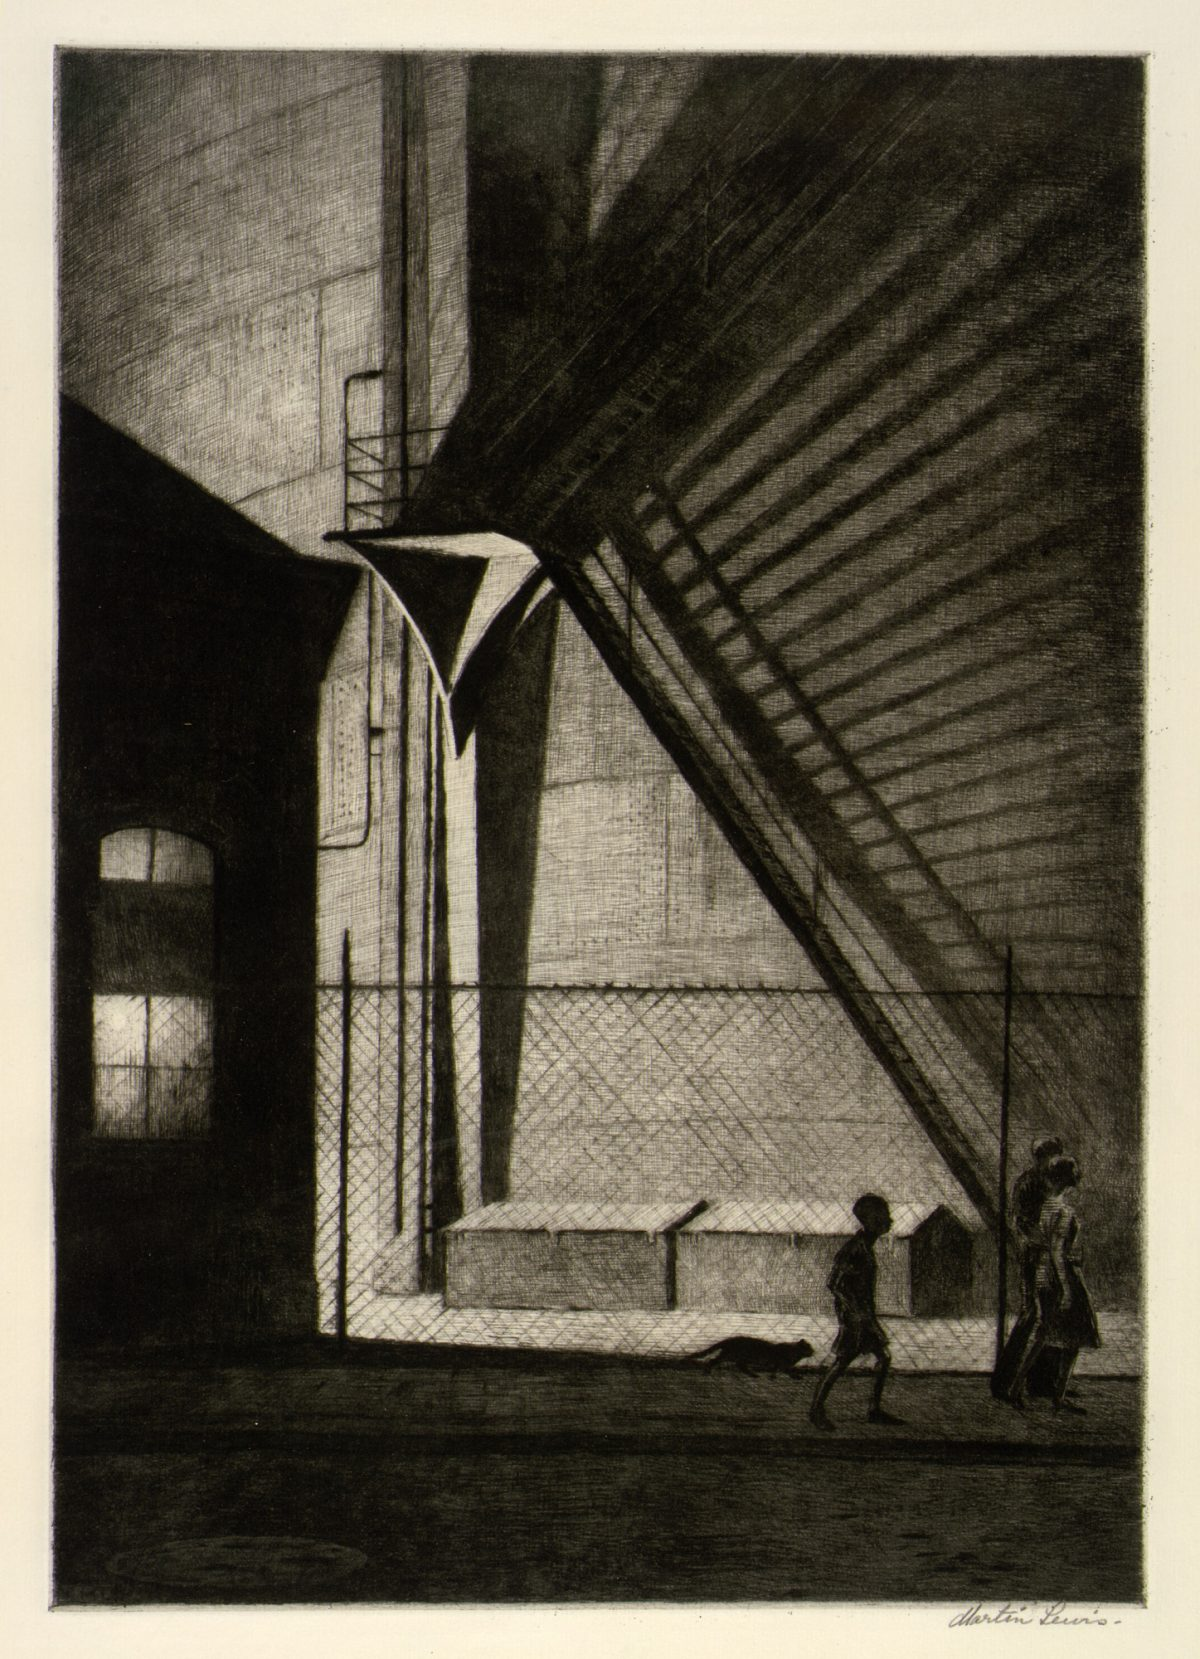 SHADOW MAGIC Martin Lewis 1939 drypoint on paper